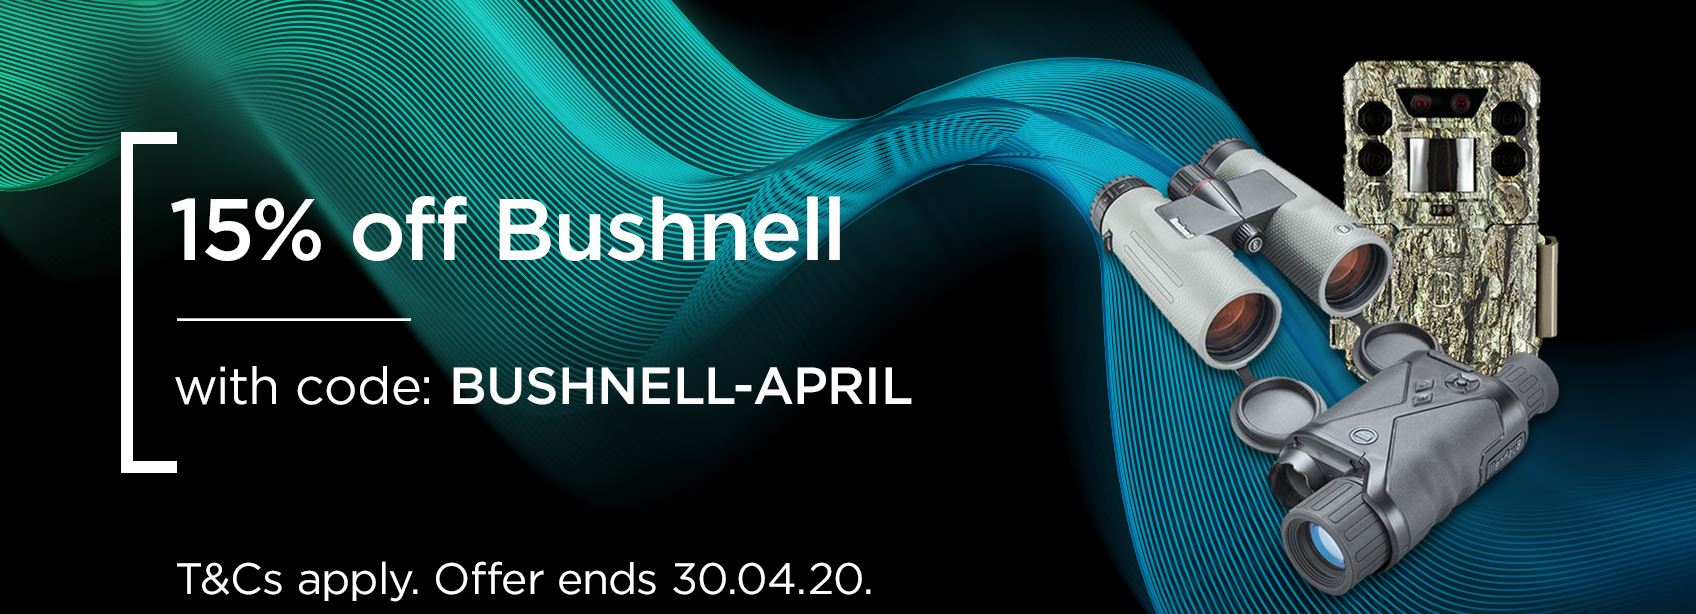 15% off Bushnell Sports Optics with BUSHNELL-APRIL